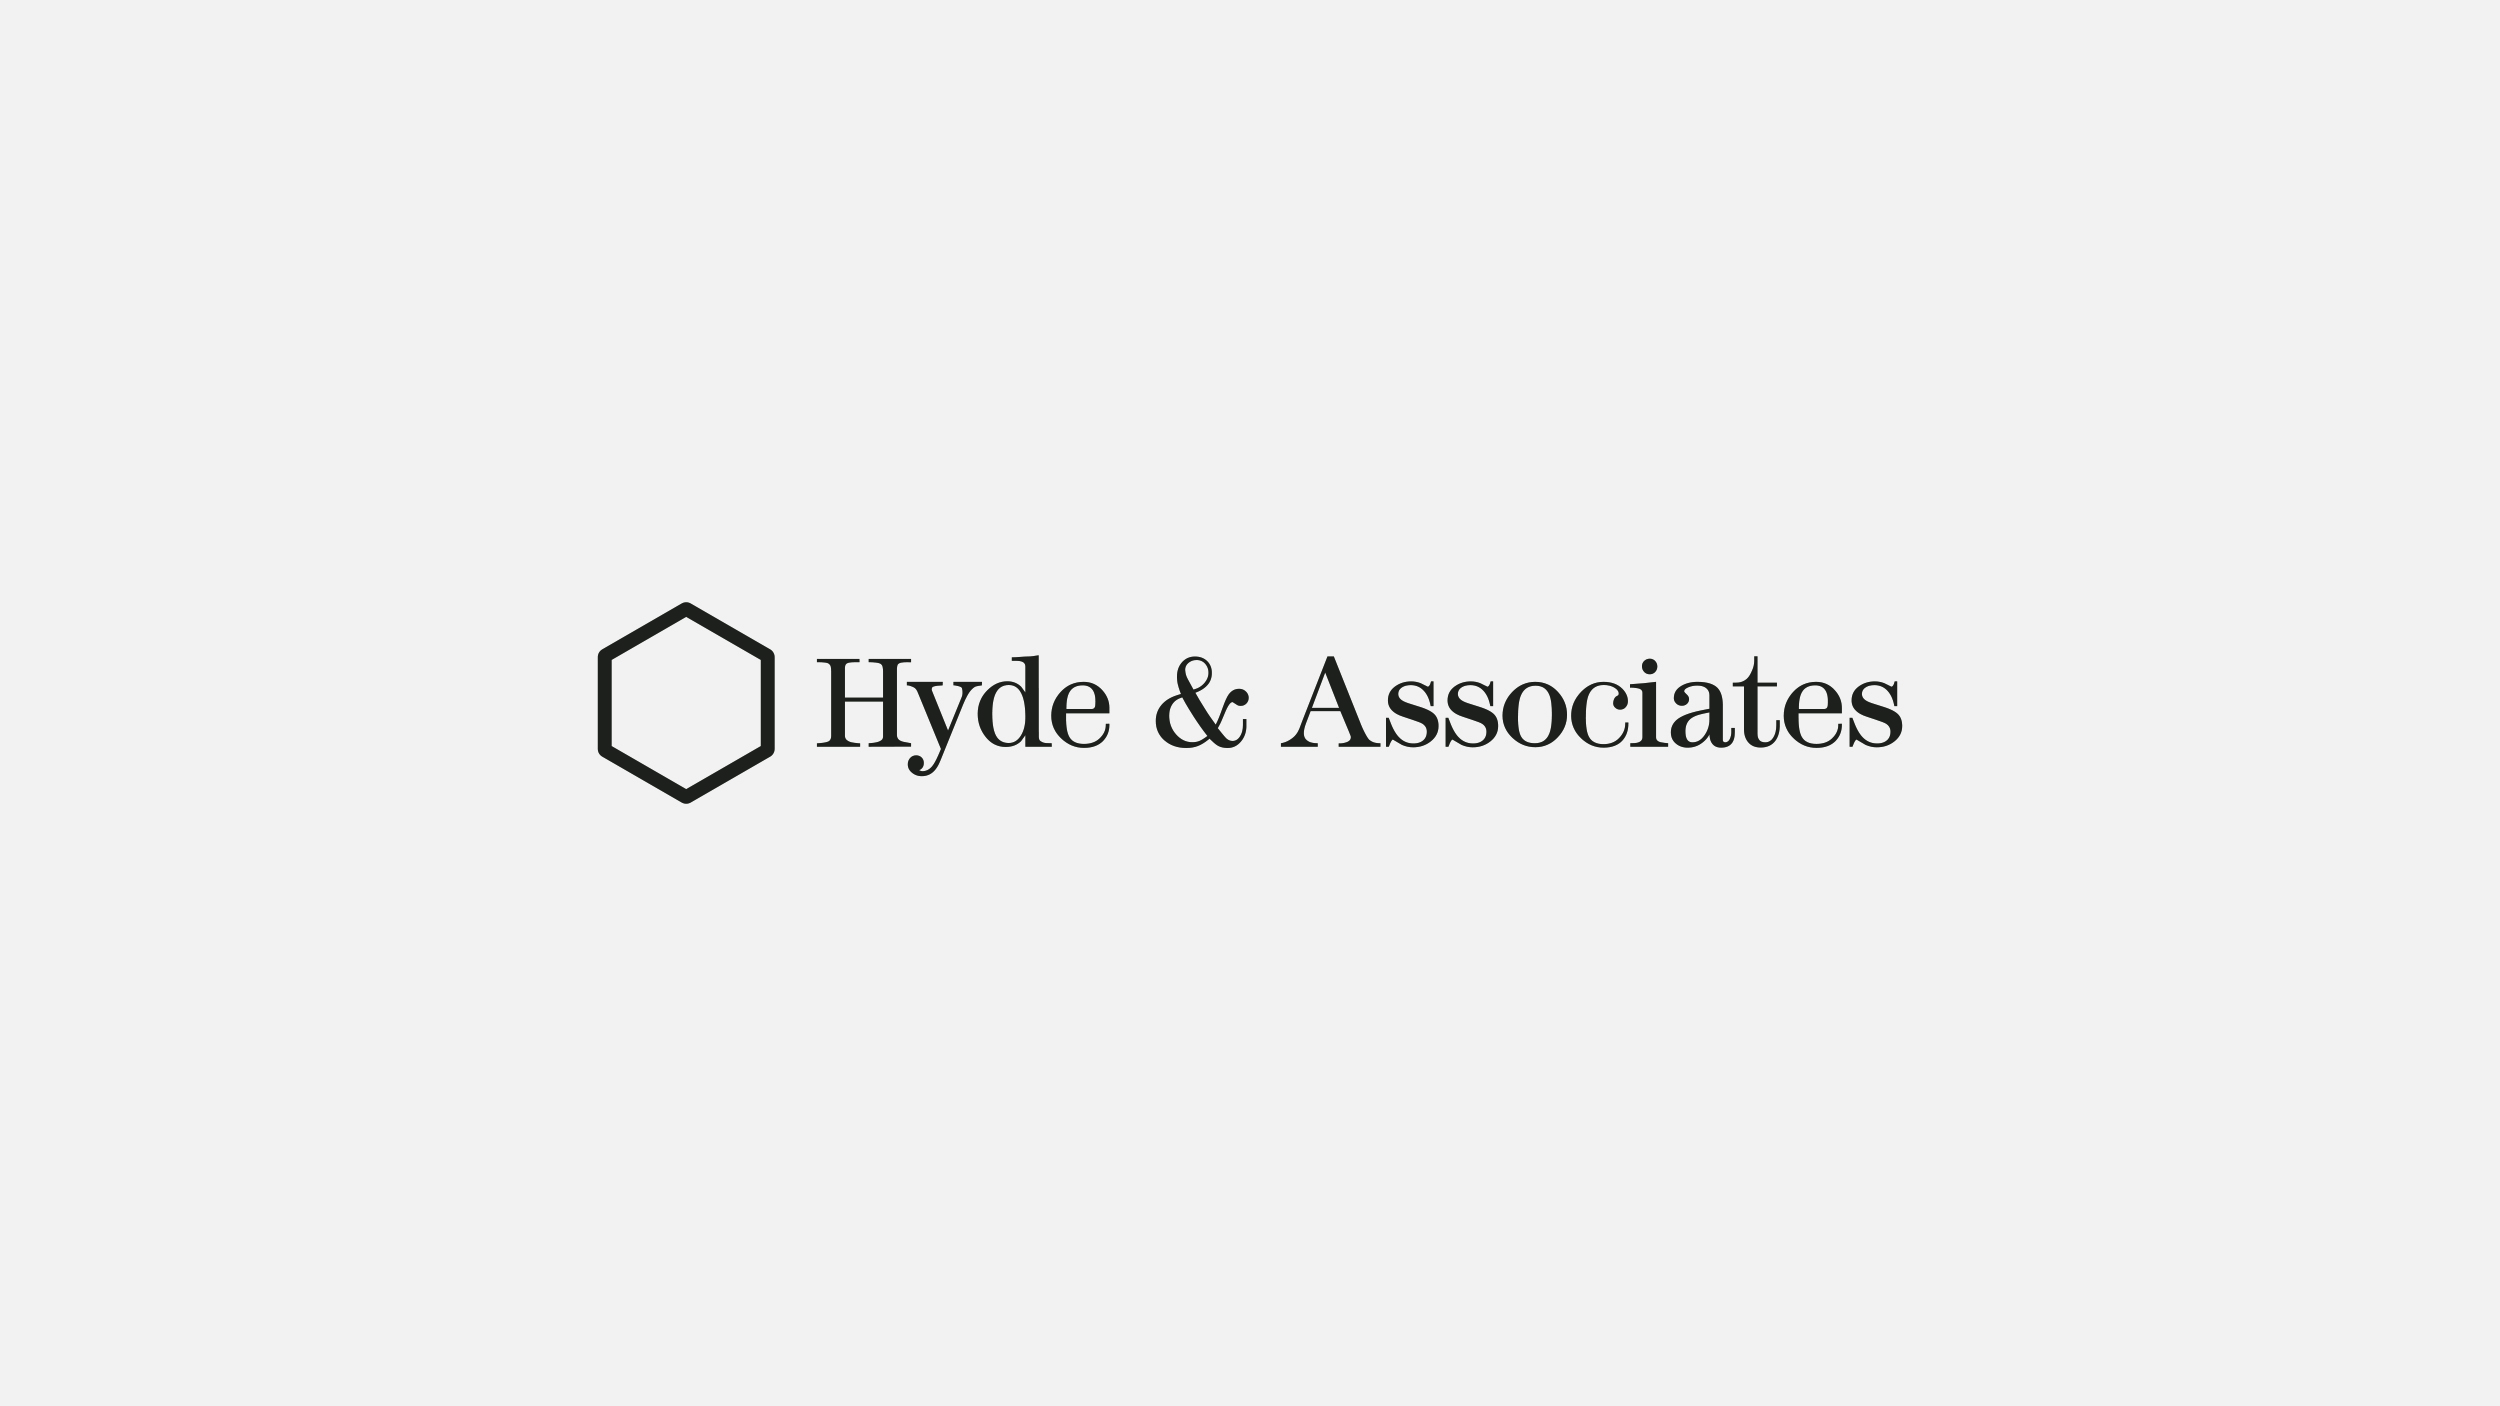 Logo_0004_Hyde_and_Associates